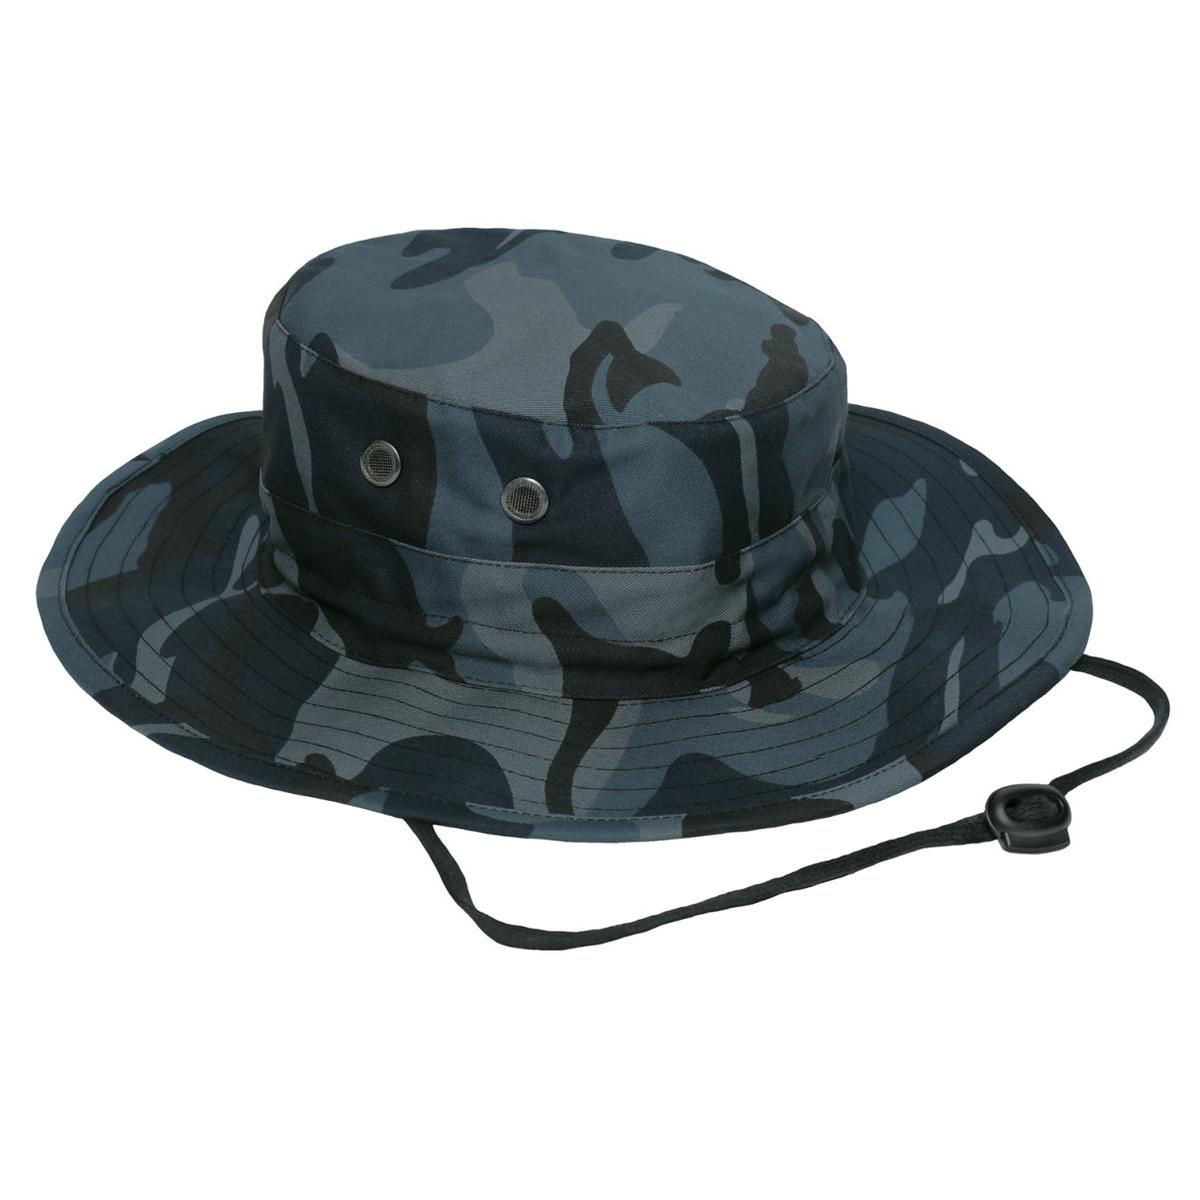 1138f93a04d83 Details about Rothco Military Type Adjustable Boonie Hat